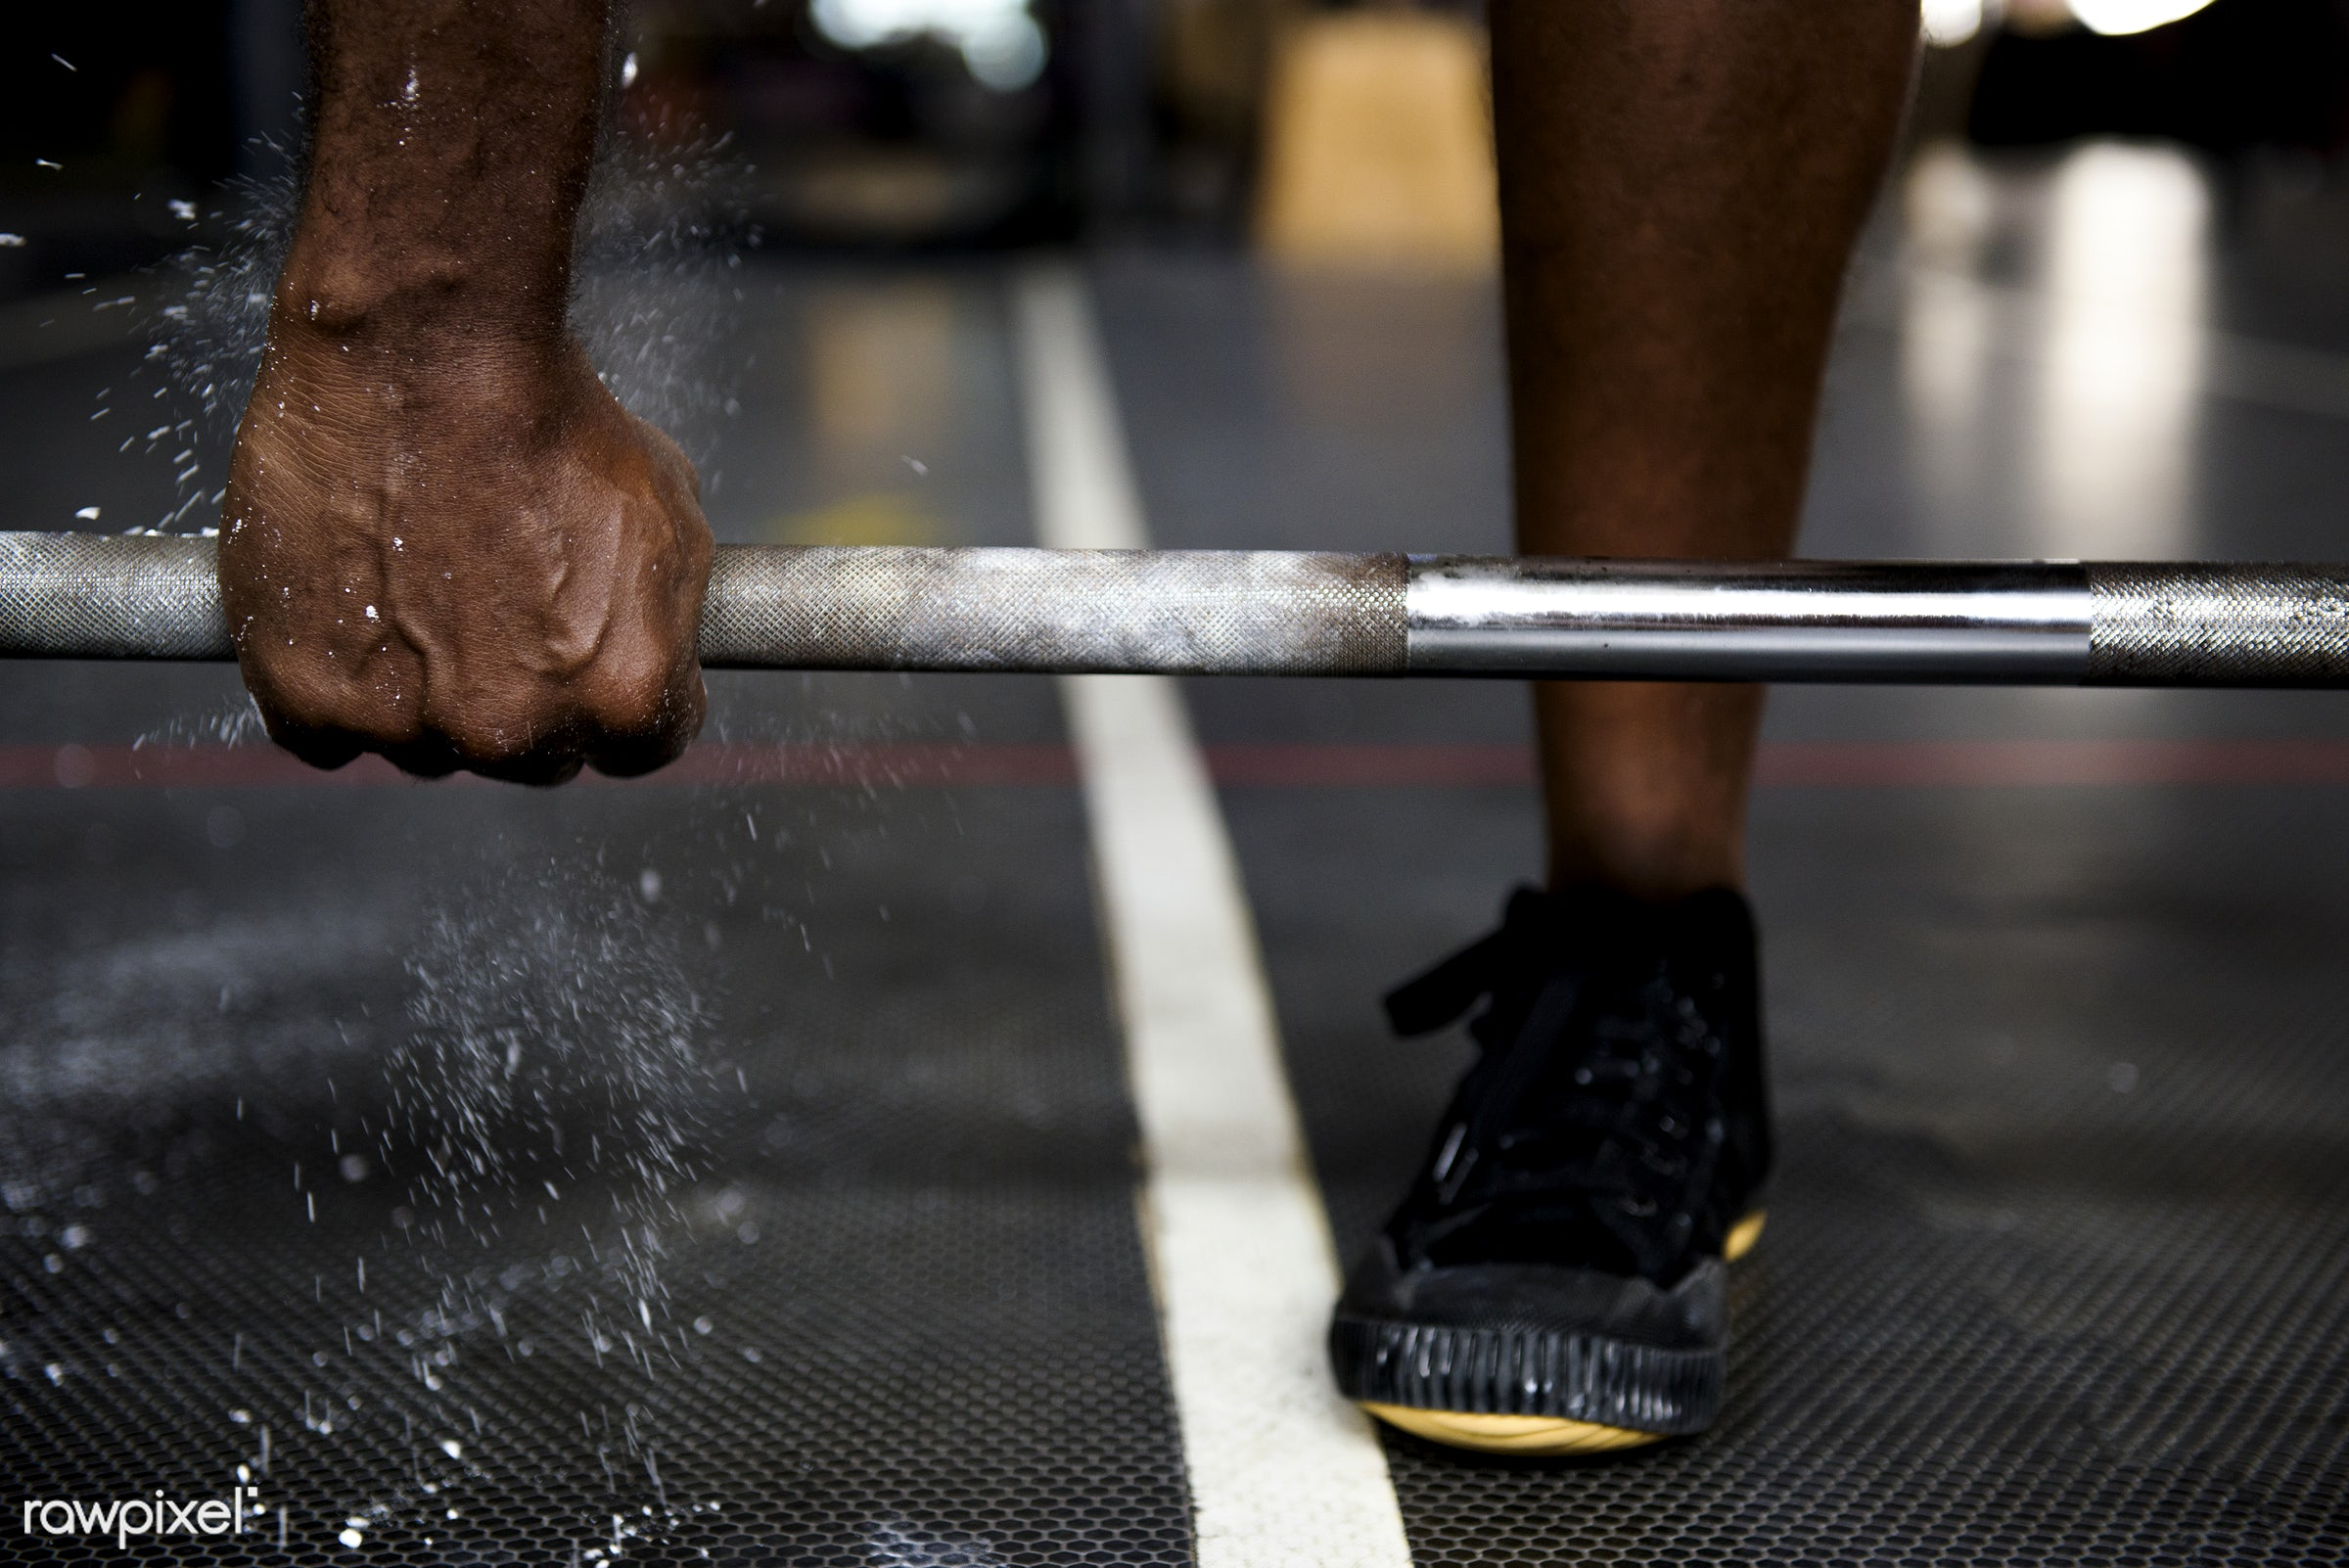 Muscle man at the gym - activity, african descent, athlete, athletic, barbell, courage, fit, fitness, floor, footwear, gym,...